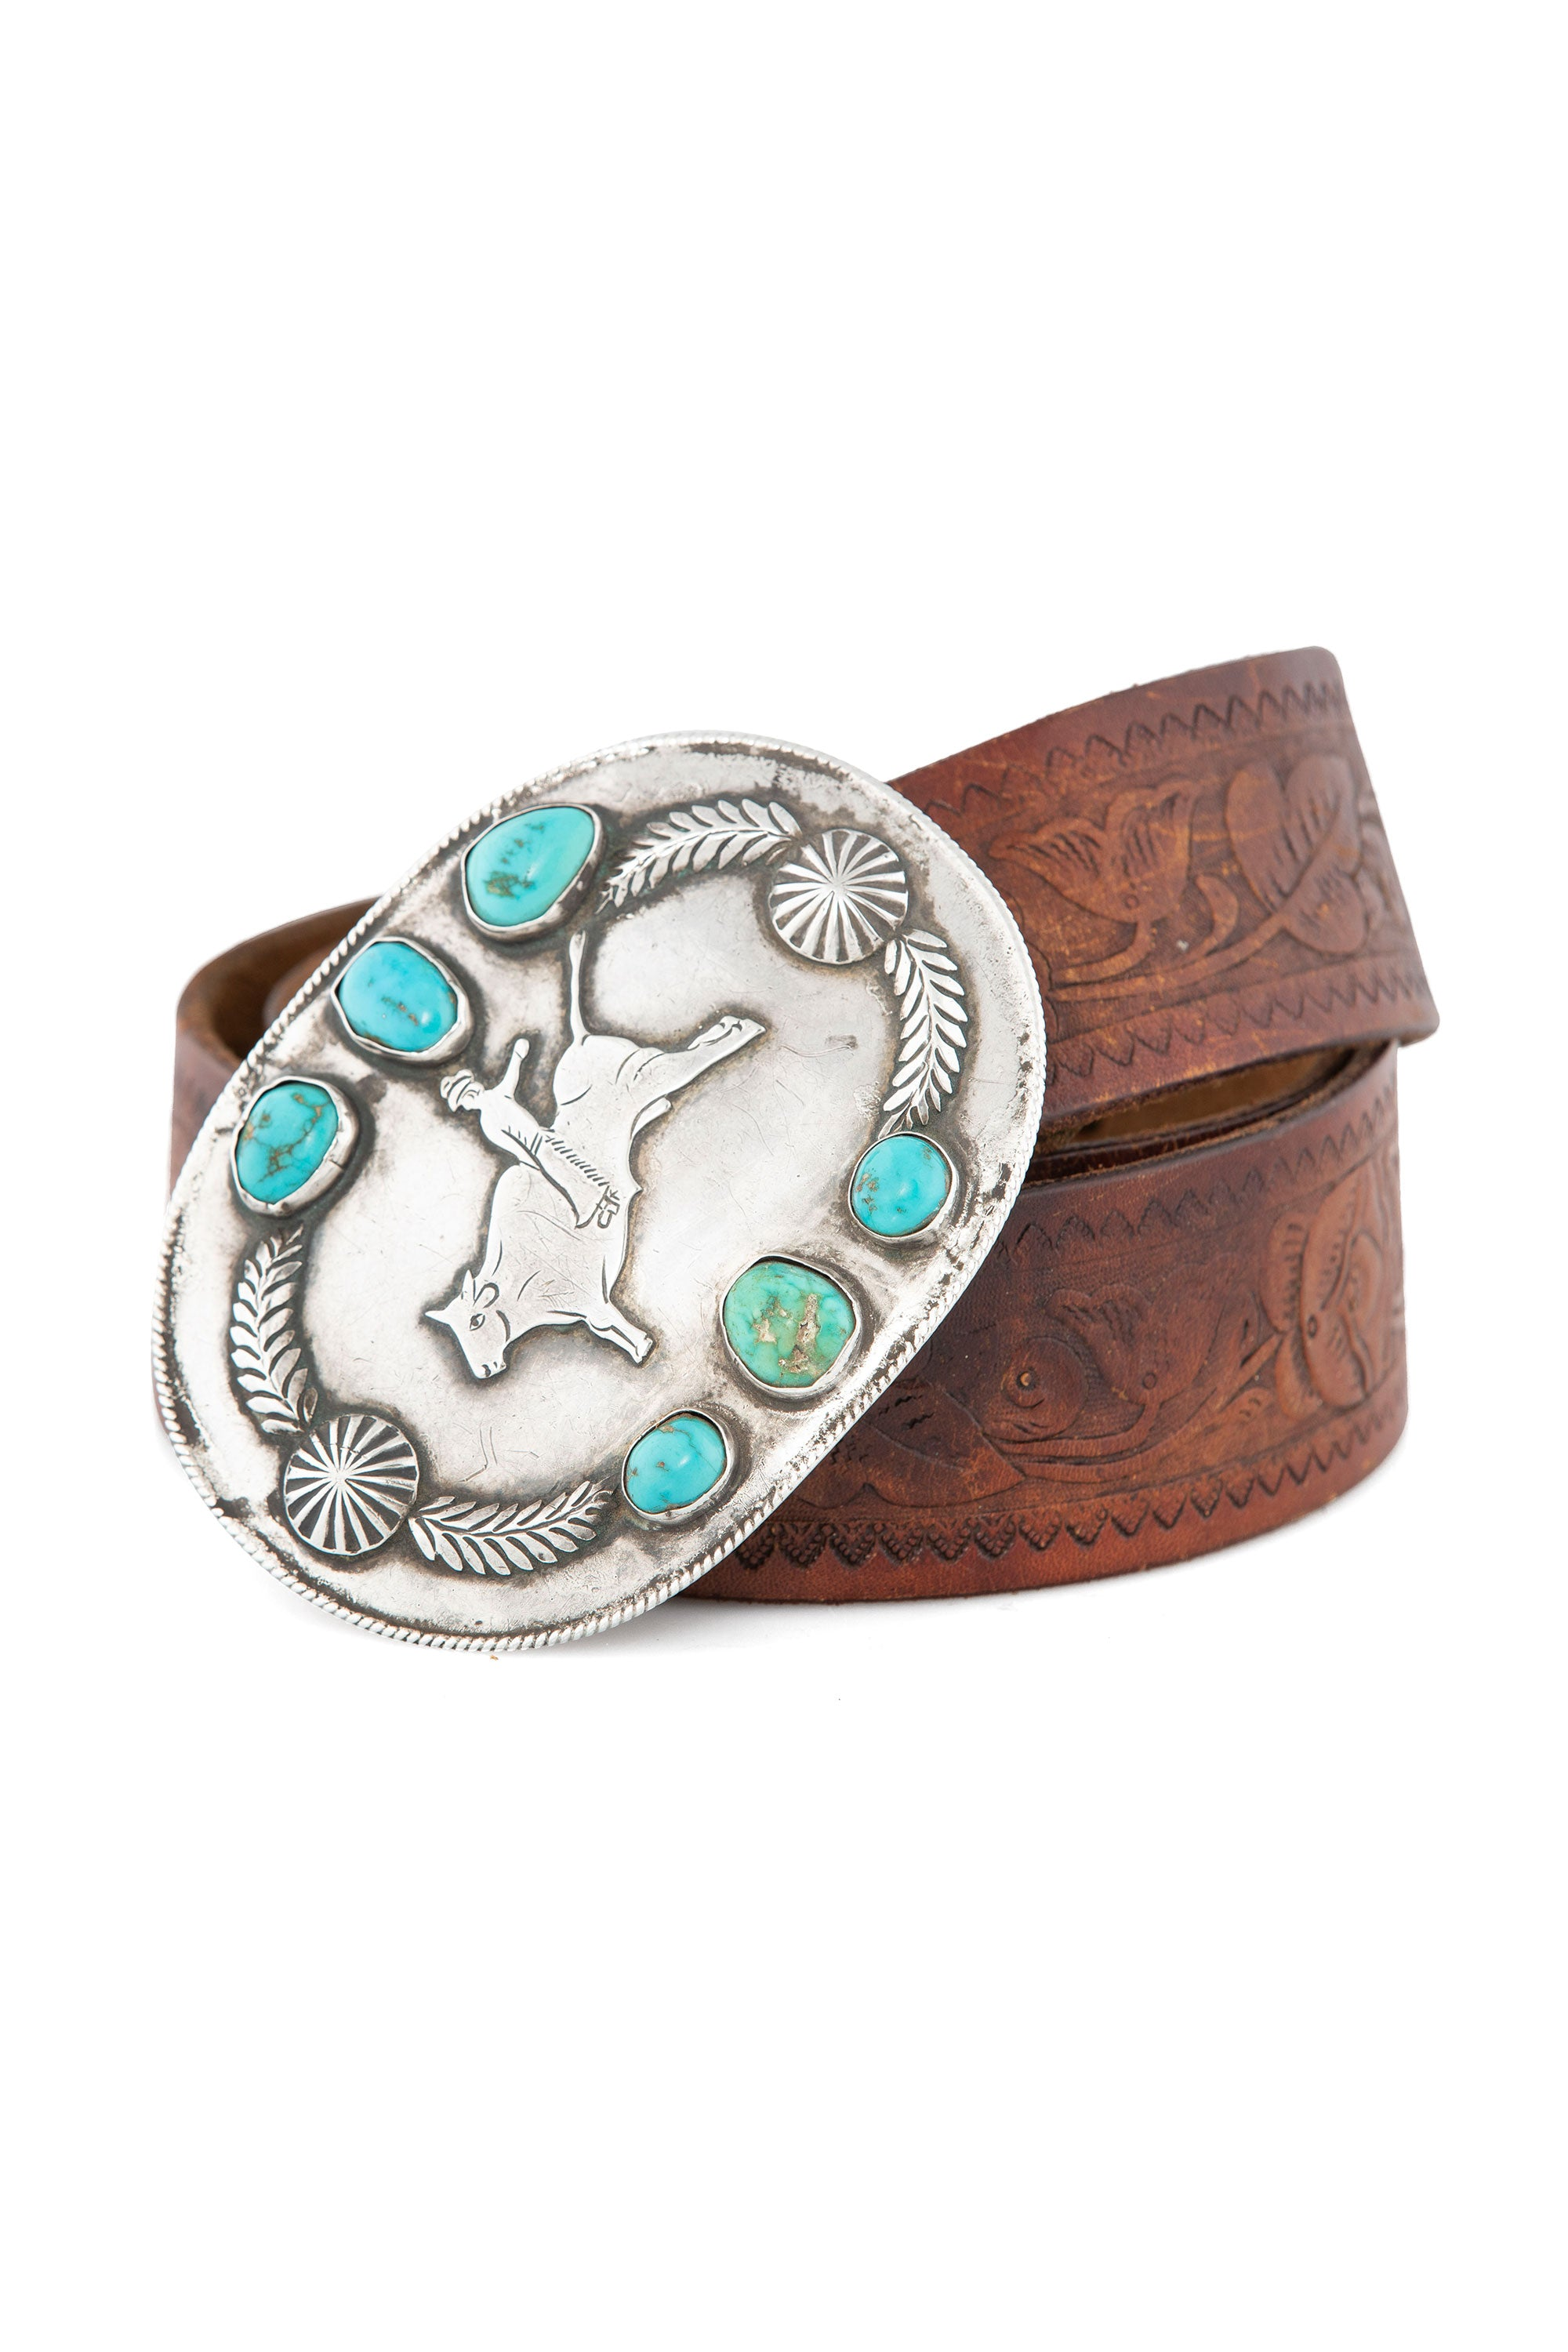 Belt, Buckle, Turquoise, Trophy, Vintage, 683